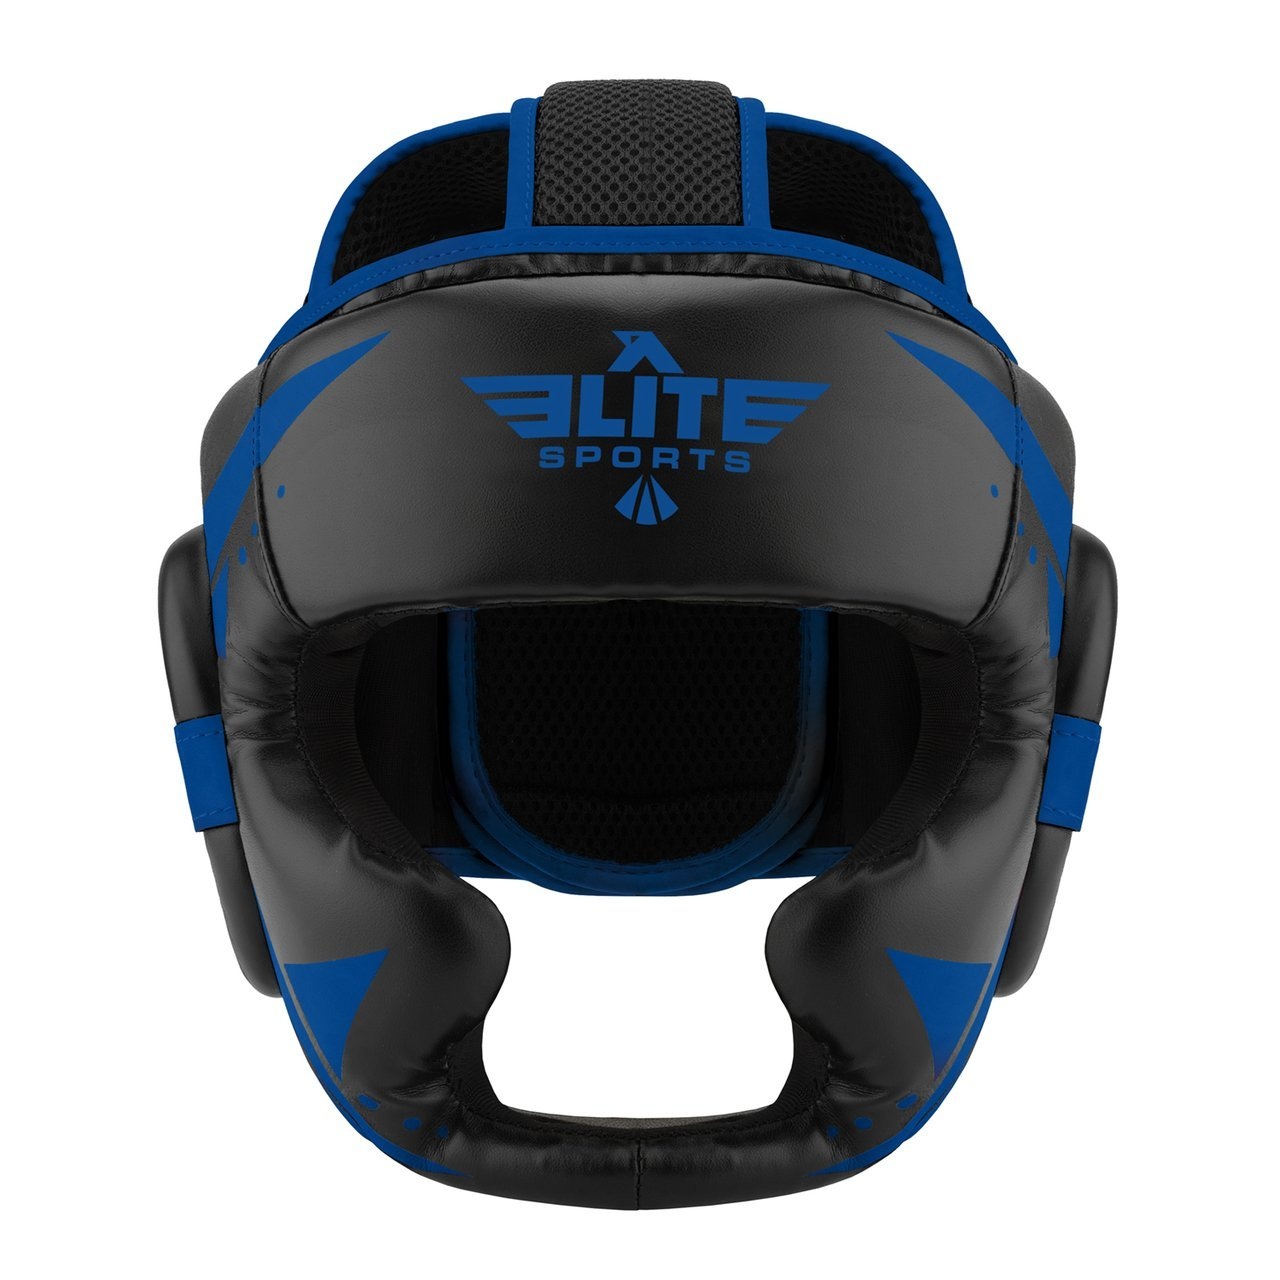 Elite Sports Star Series Sparring Black/Blue Karate Headgear